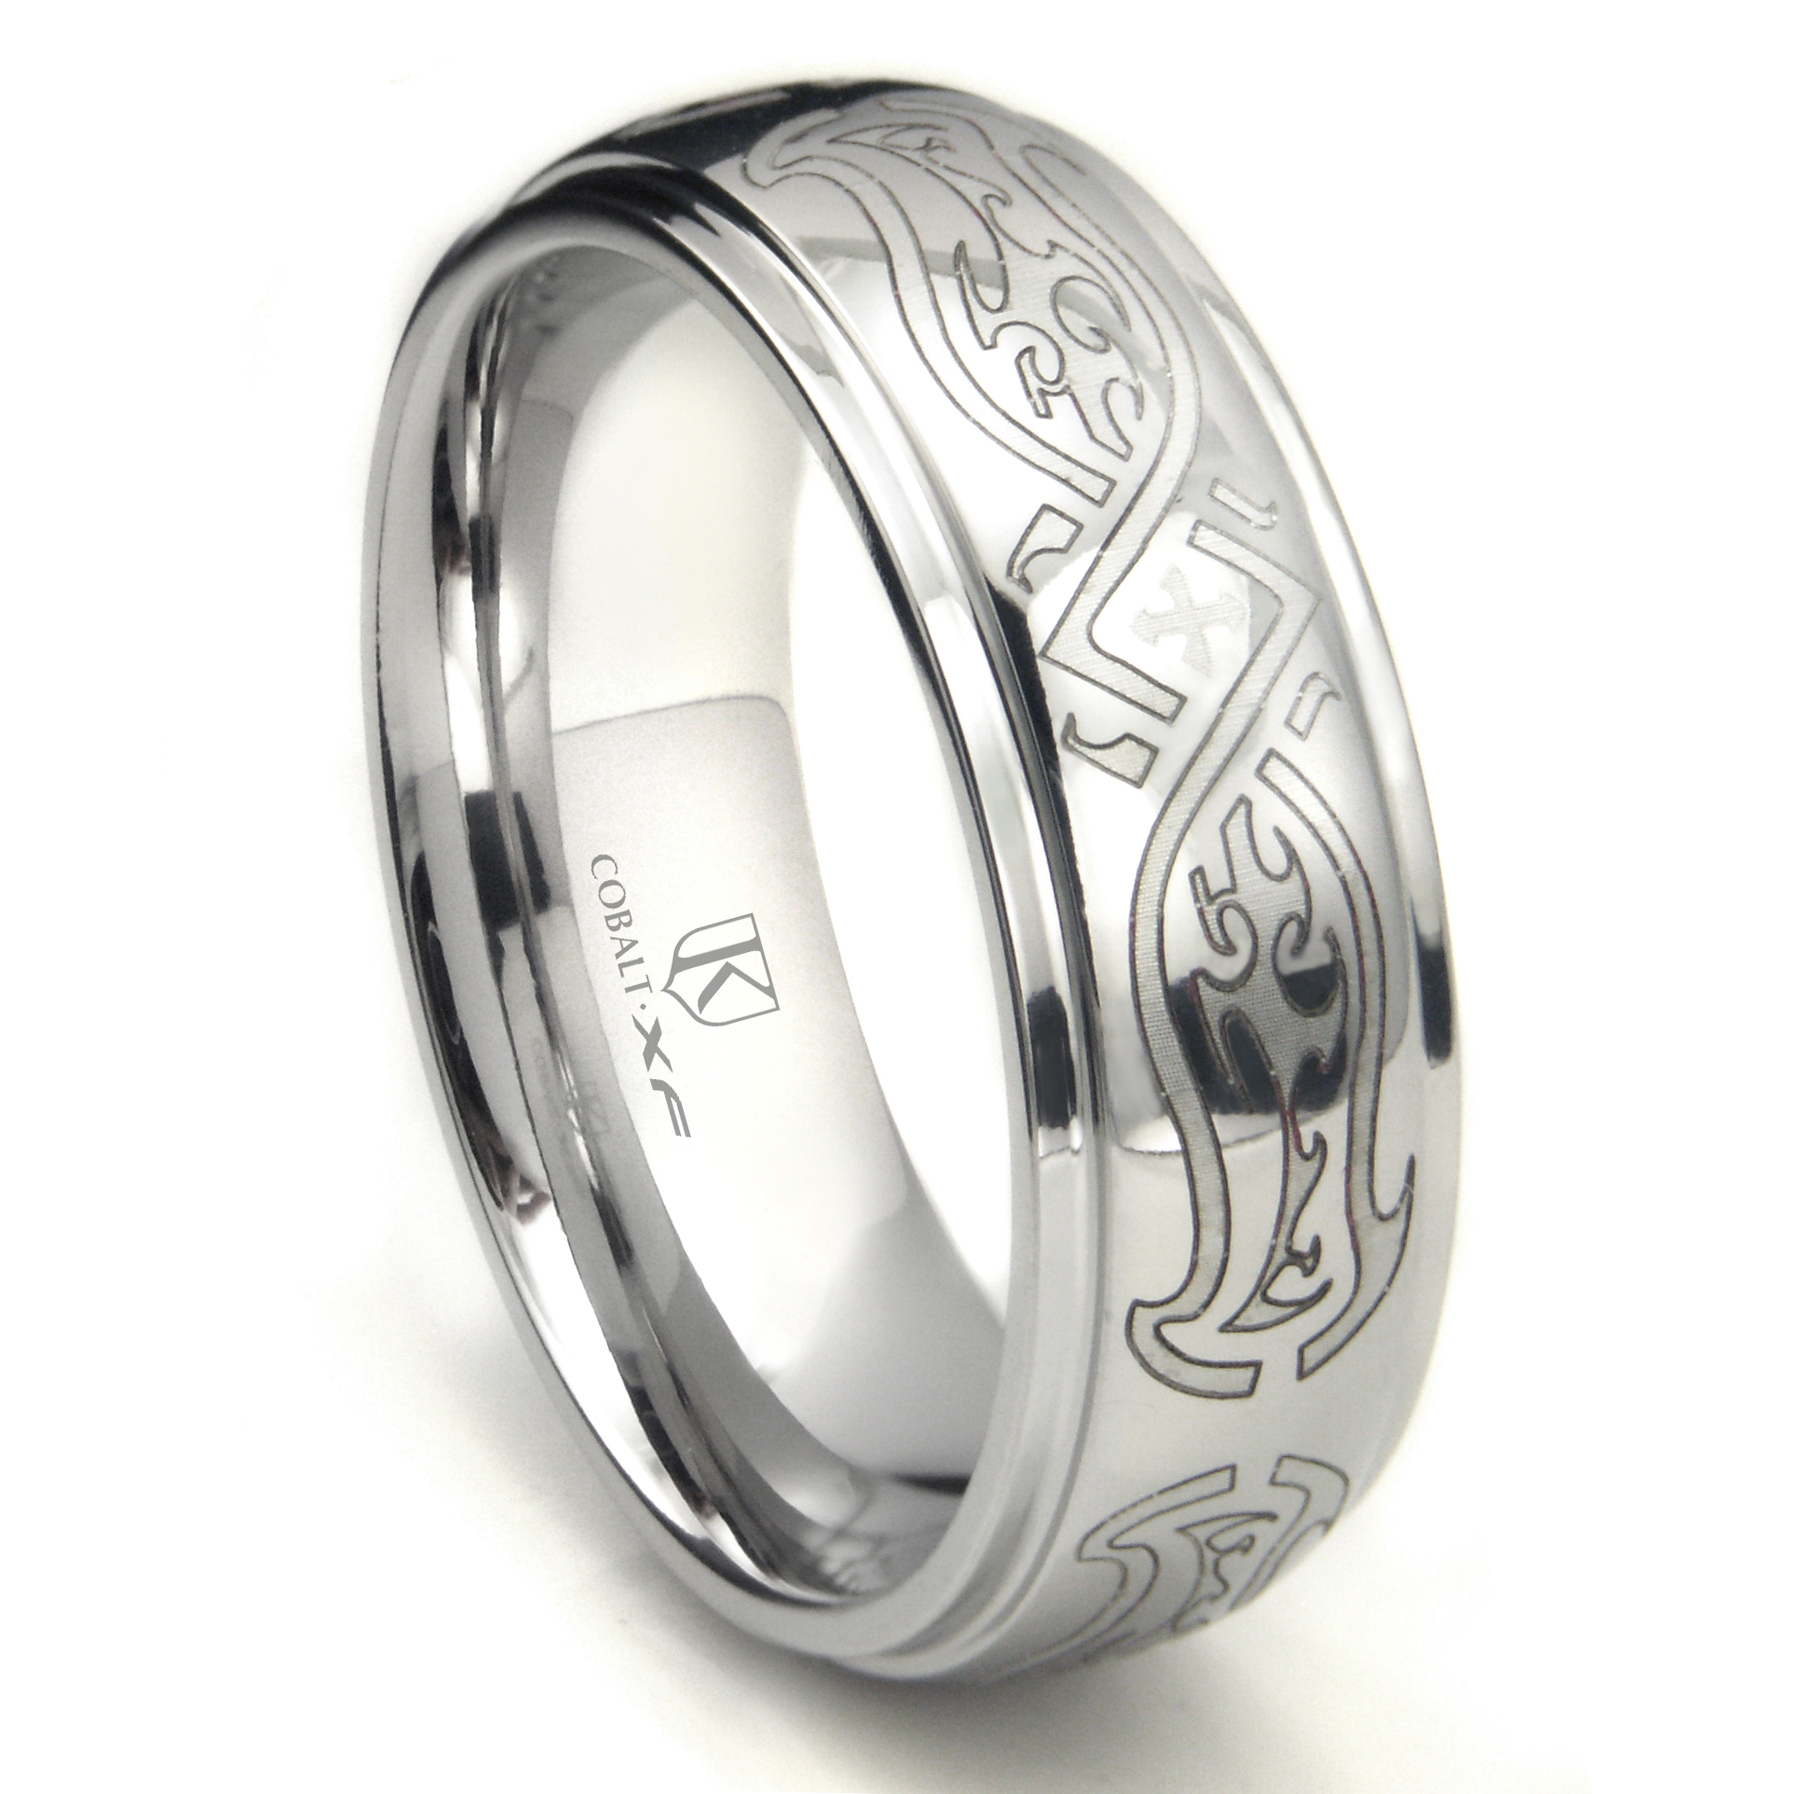 gaelic rings true a bands set l matching wedding match gemvara engagement